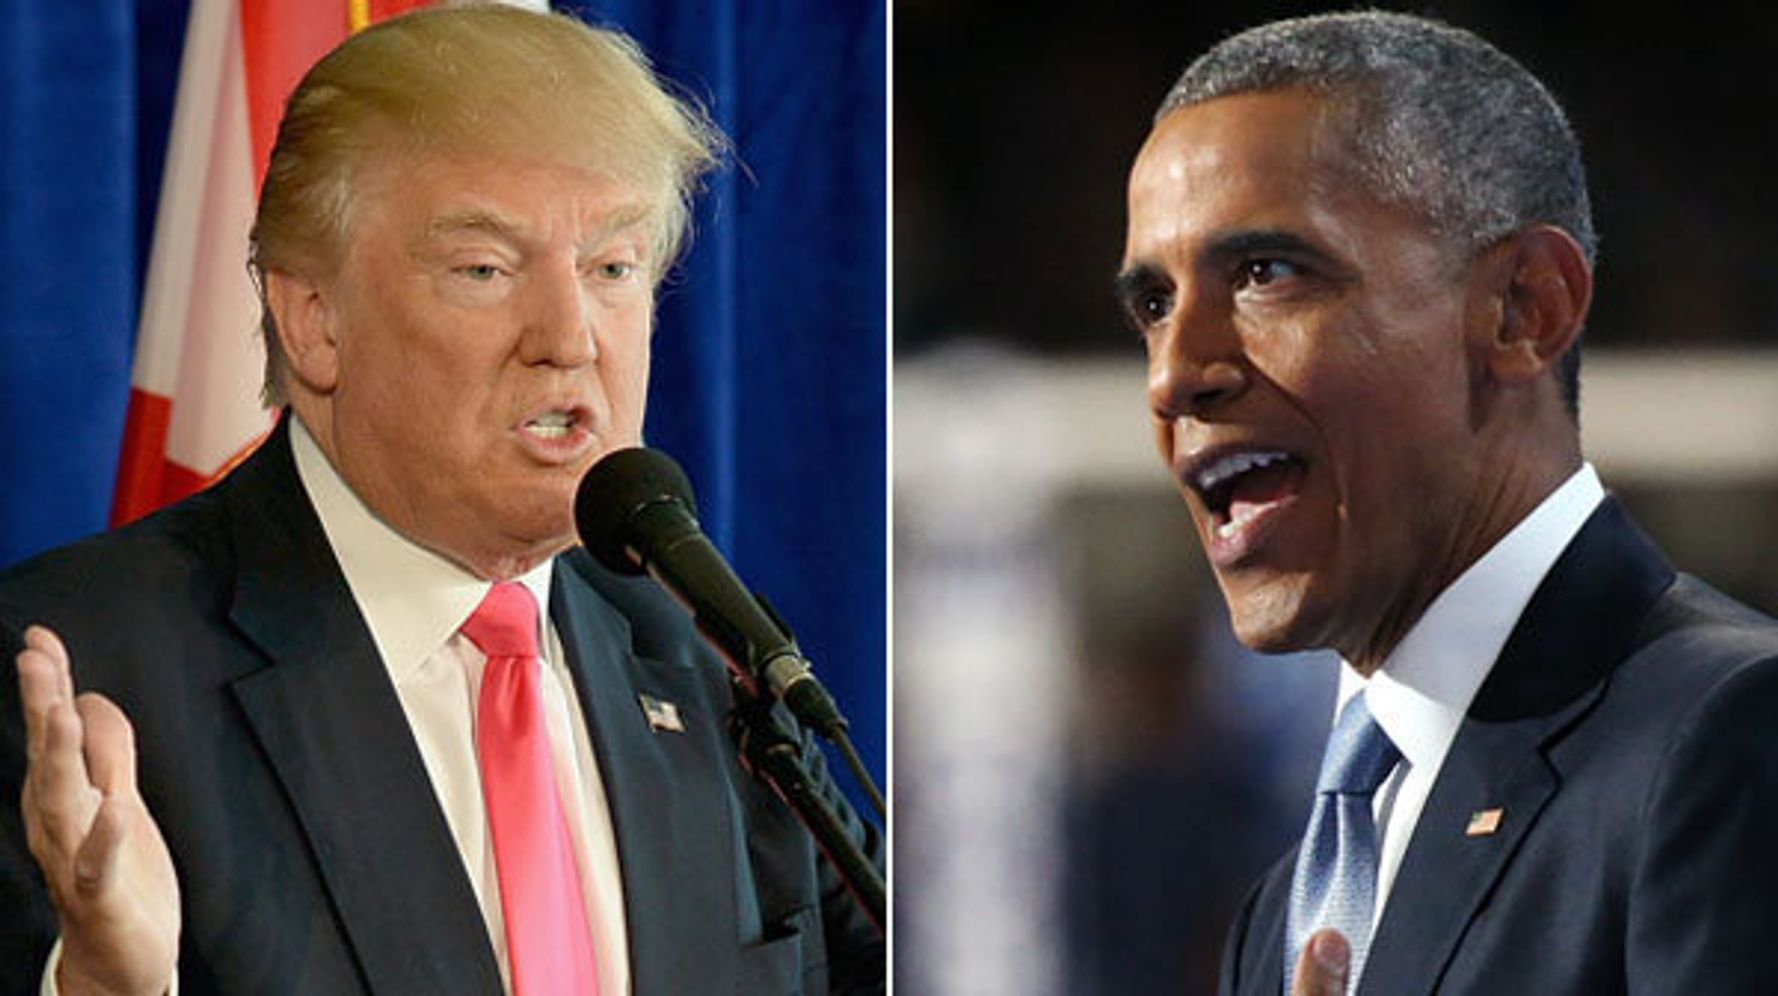 We Compared Obama's Words To Trump's And The Result Will